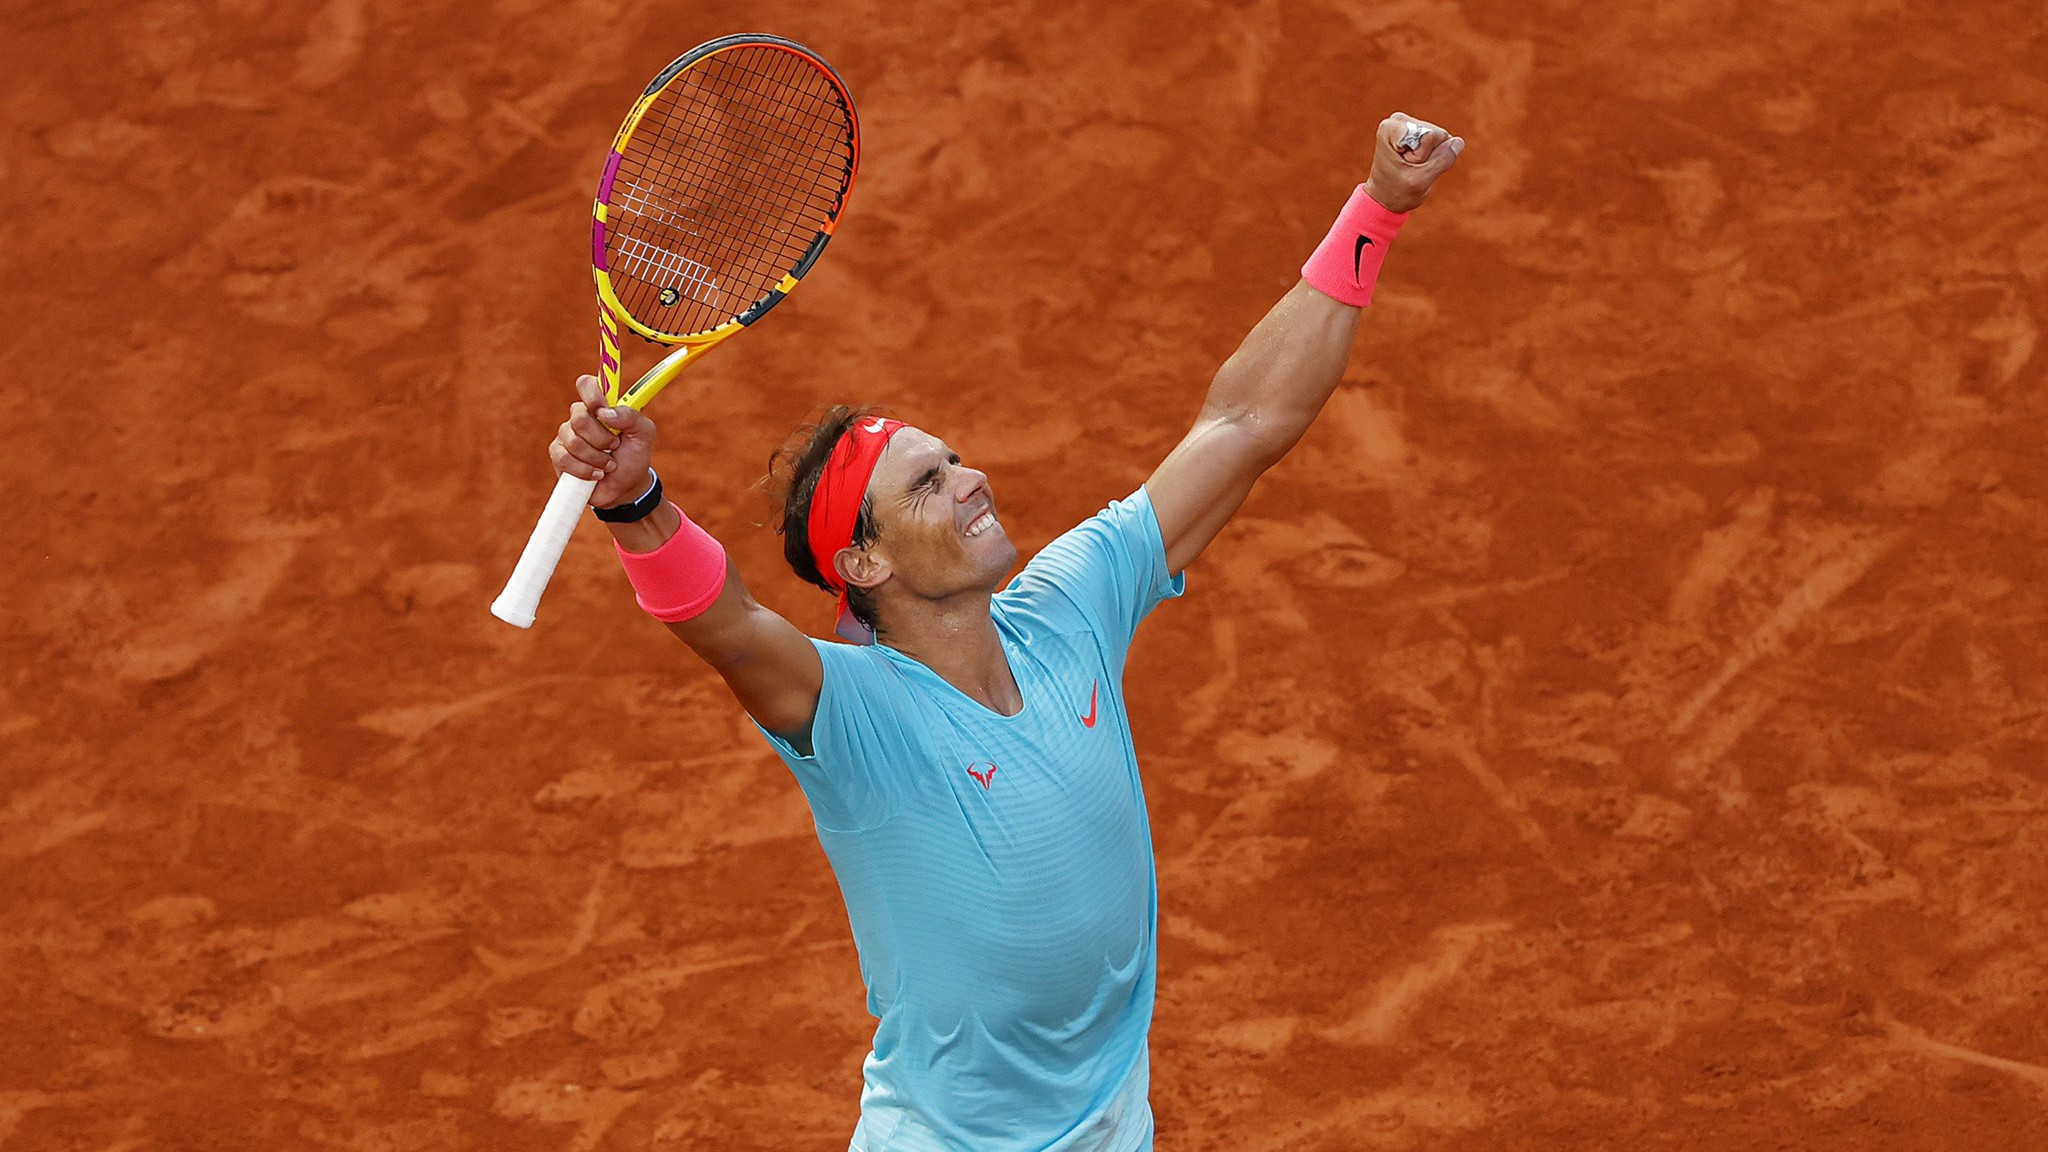 A victorious Nadal.